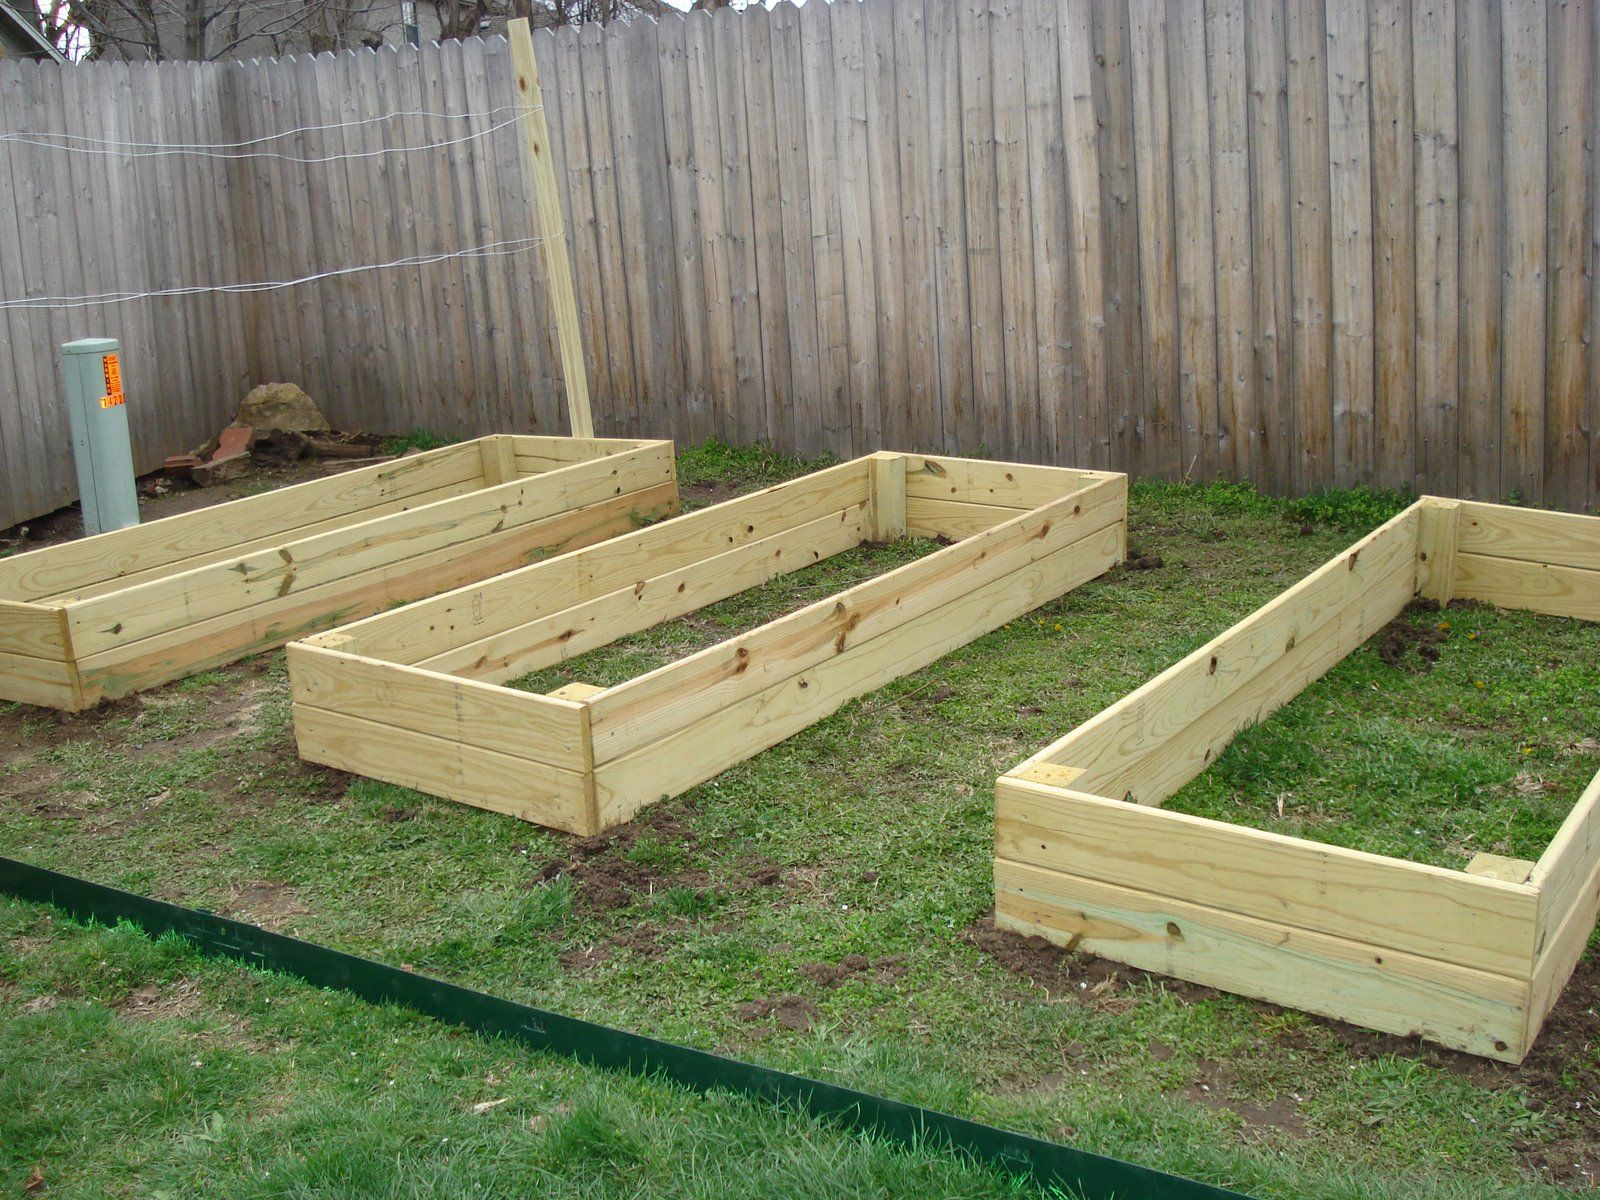 25 diy raised garden bed plans that are simple and cheap